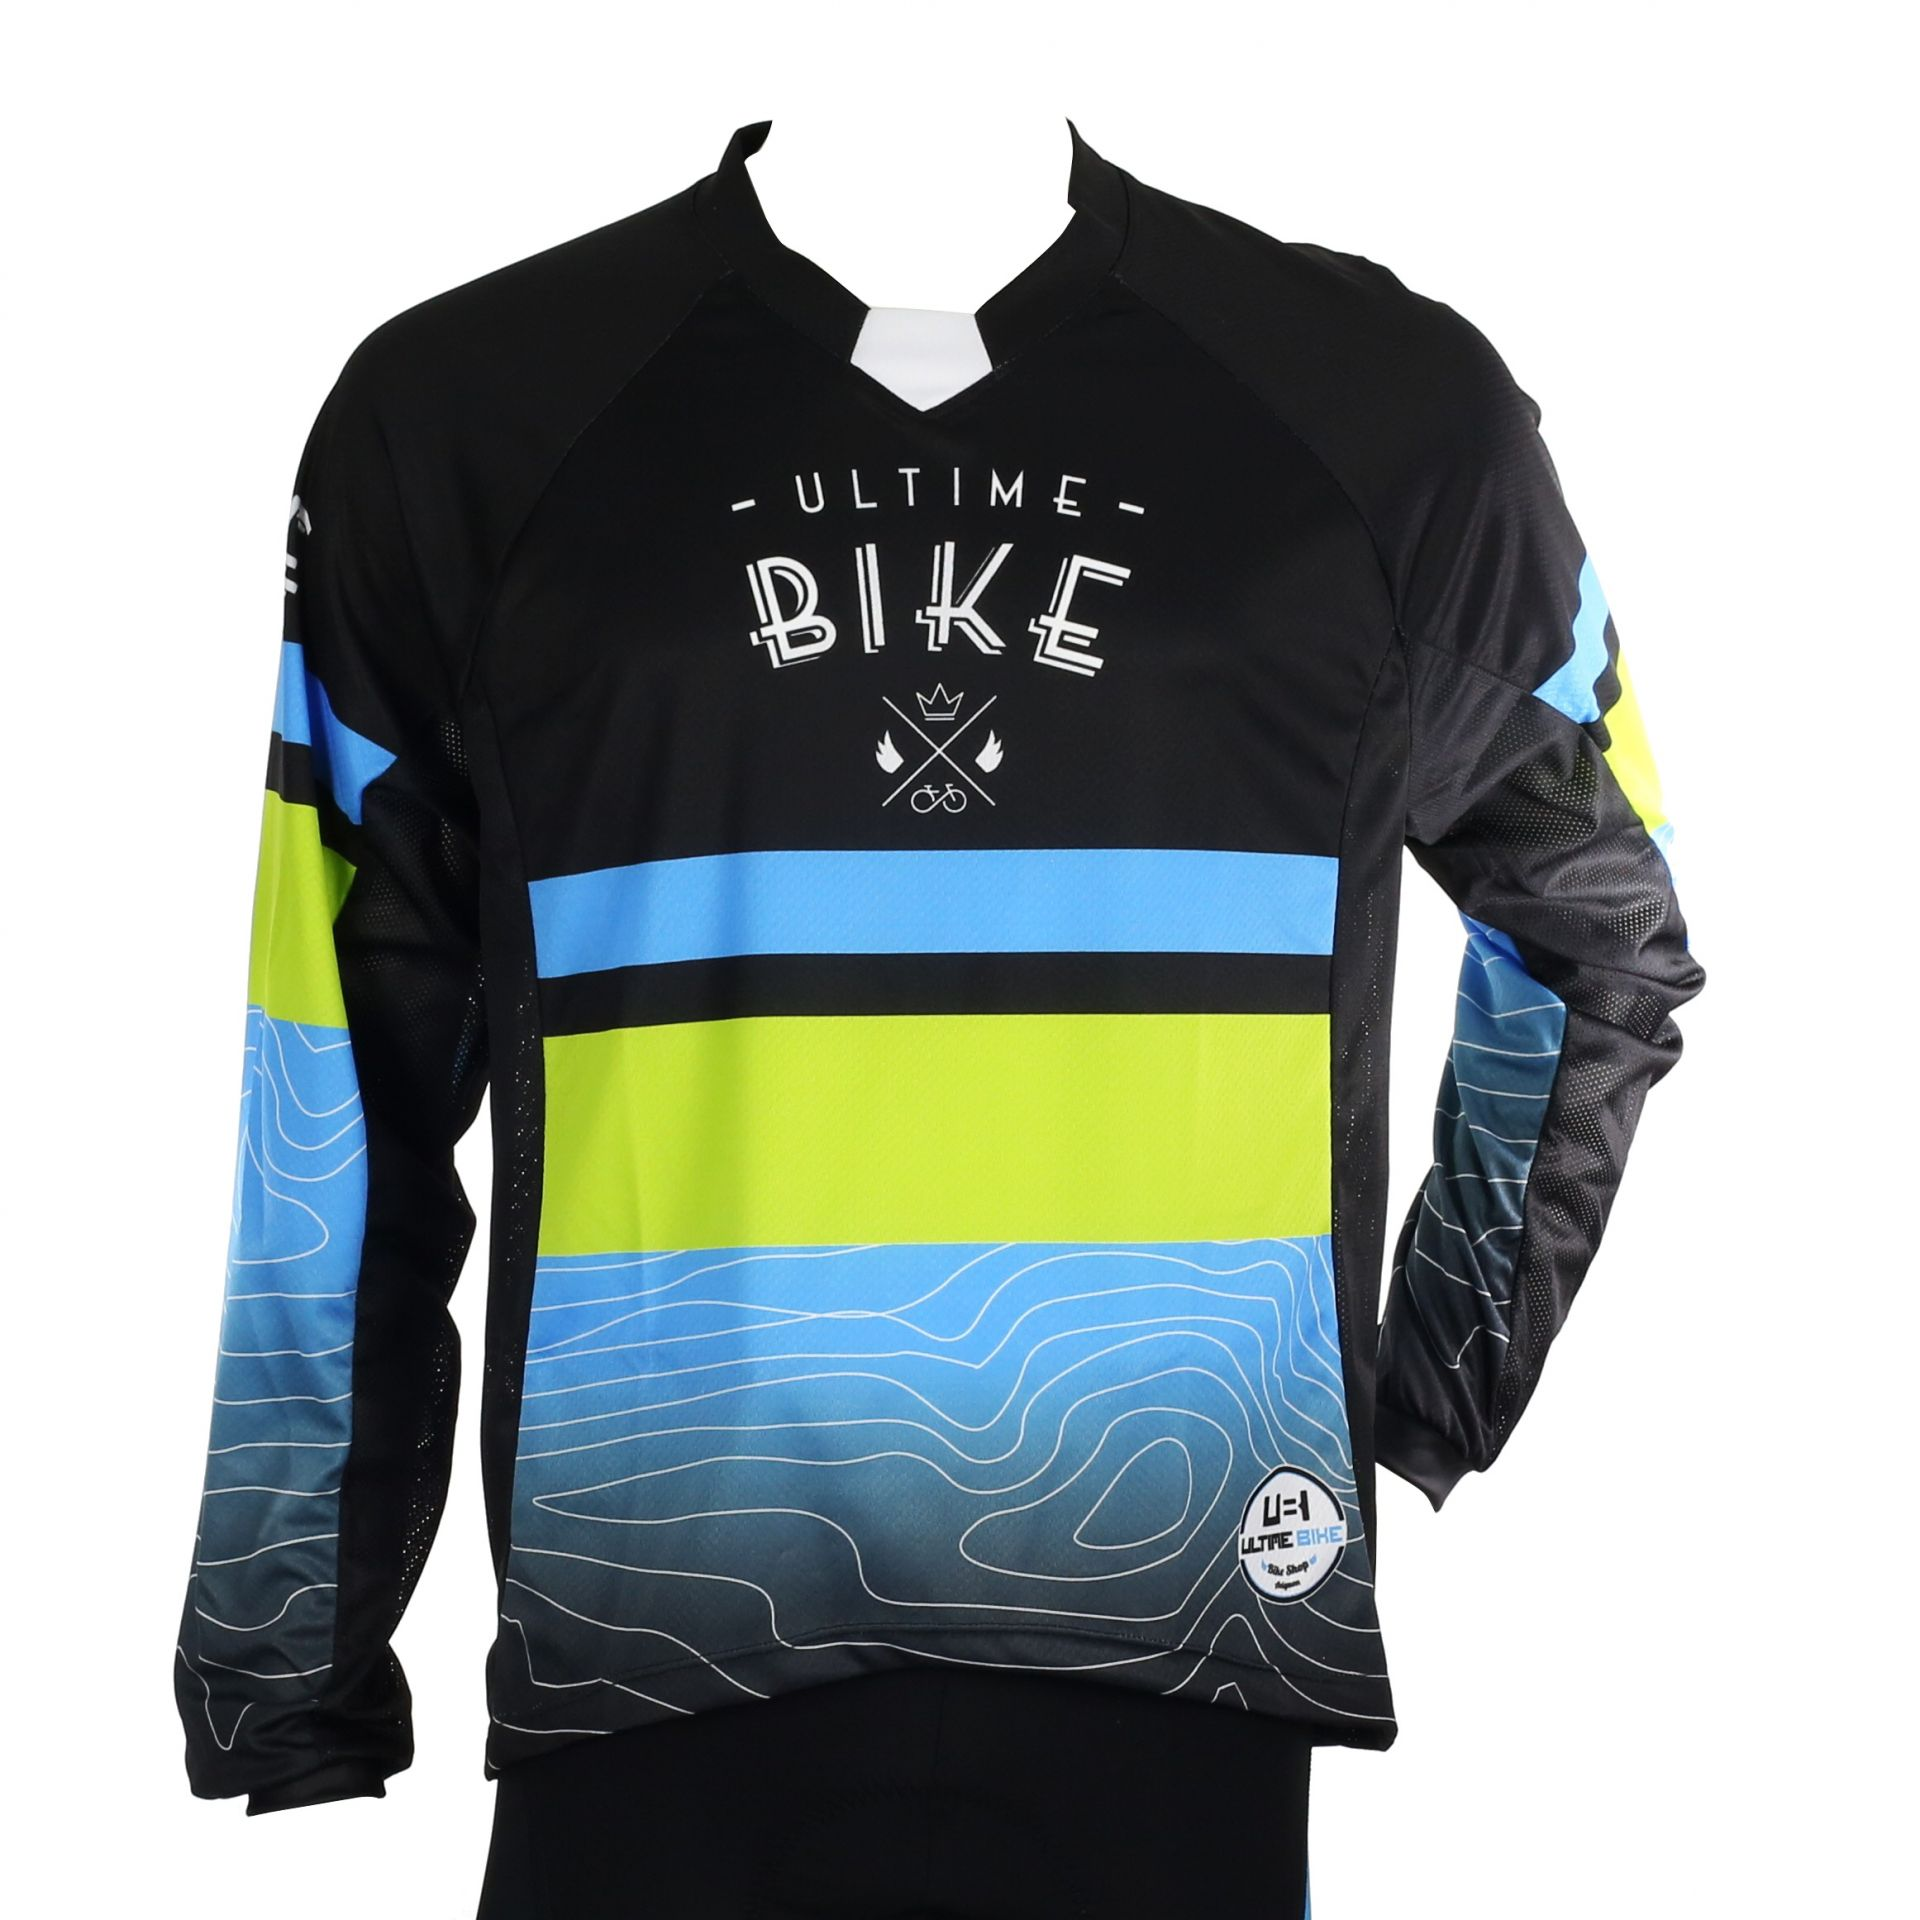 Maillot UltimeBike Enduro by TACTIC Manches longues - S